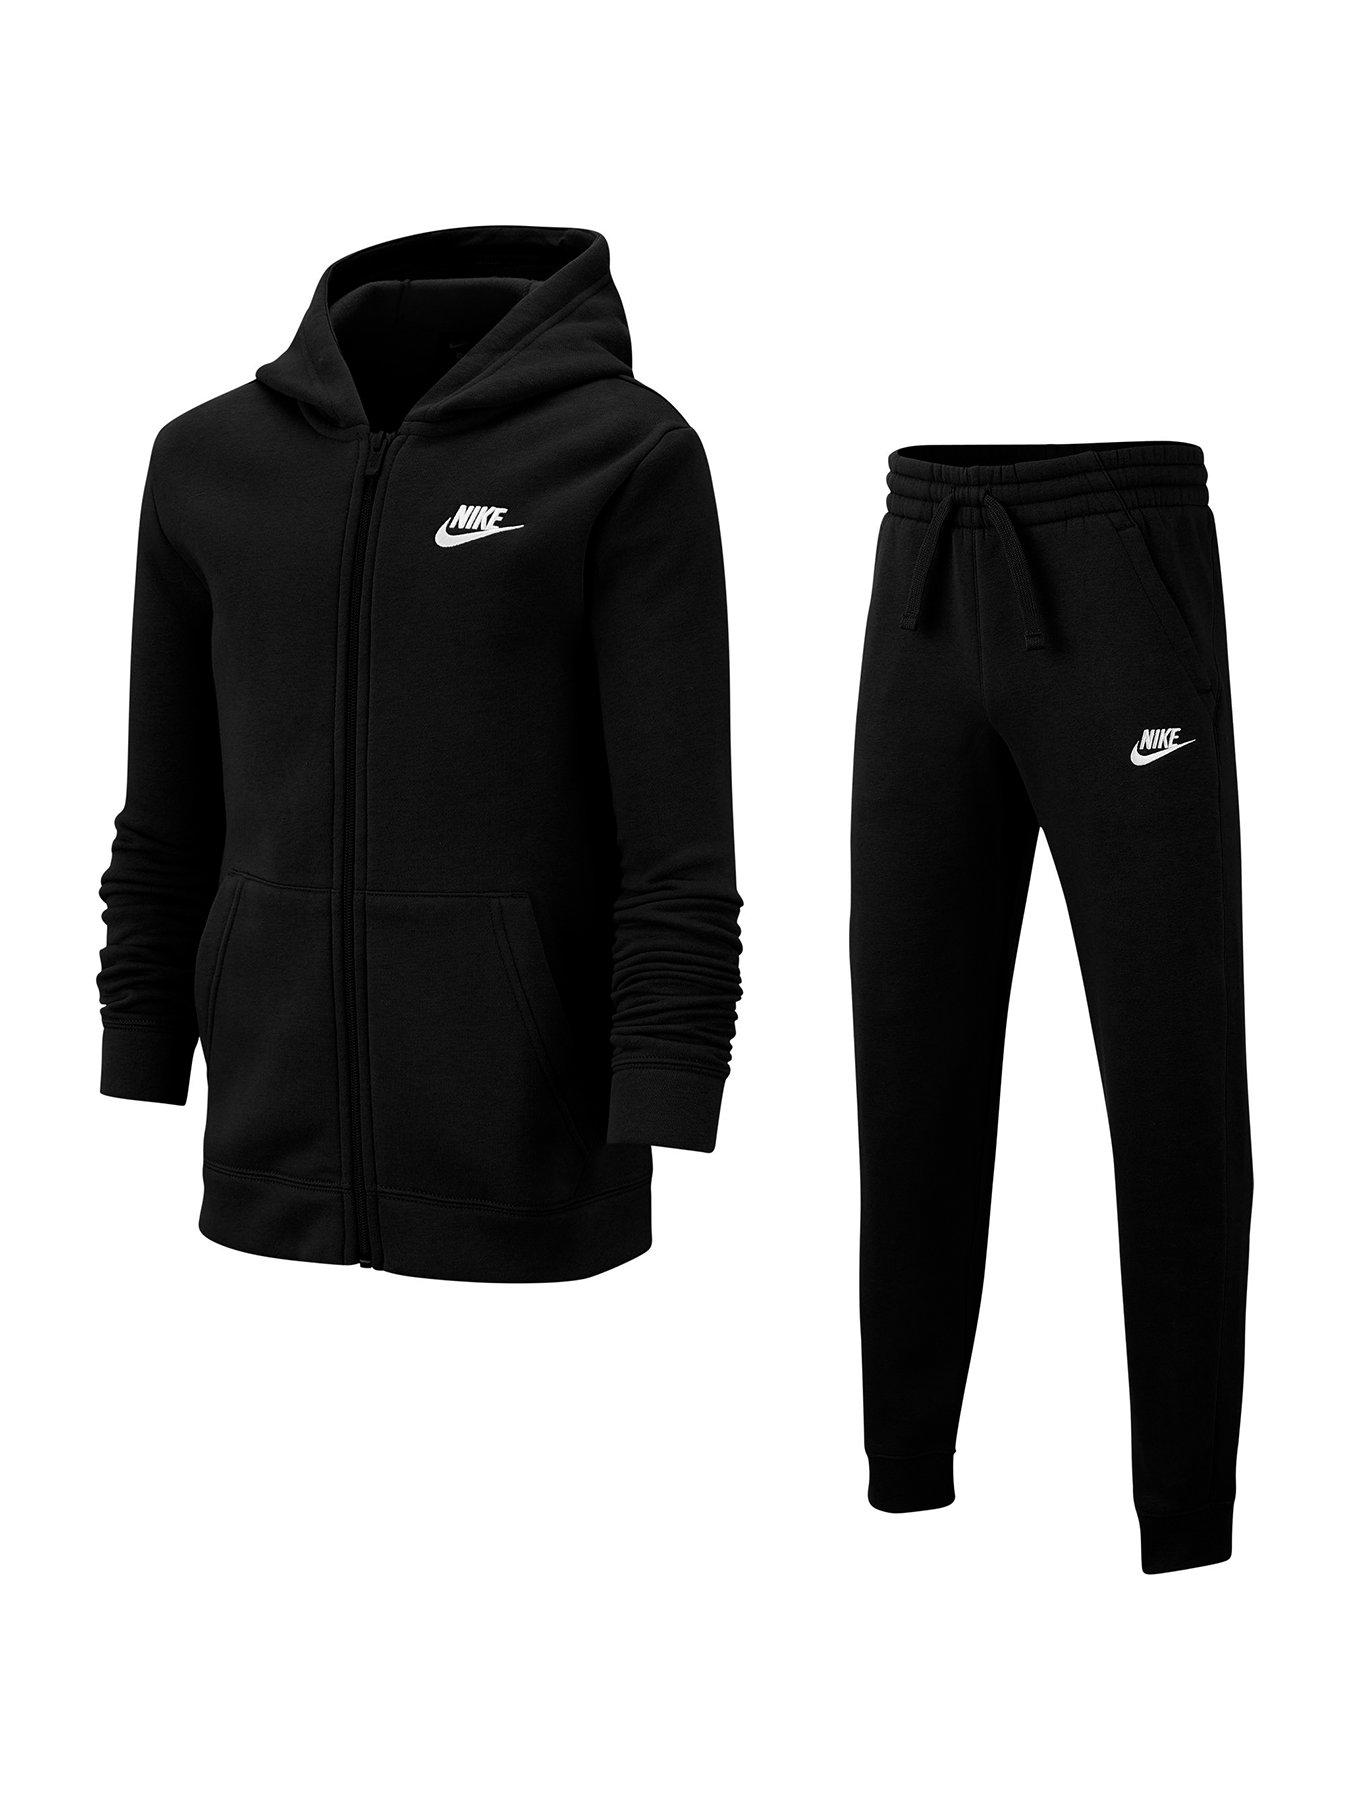 Boys Tracksuits   Next Day Delivery